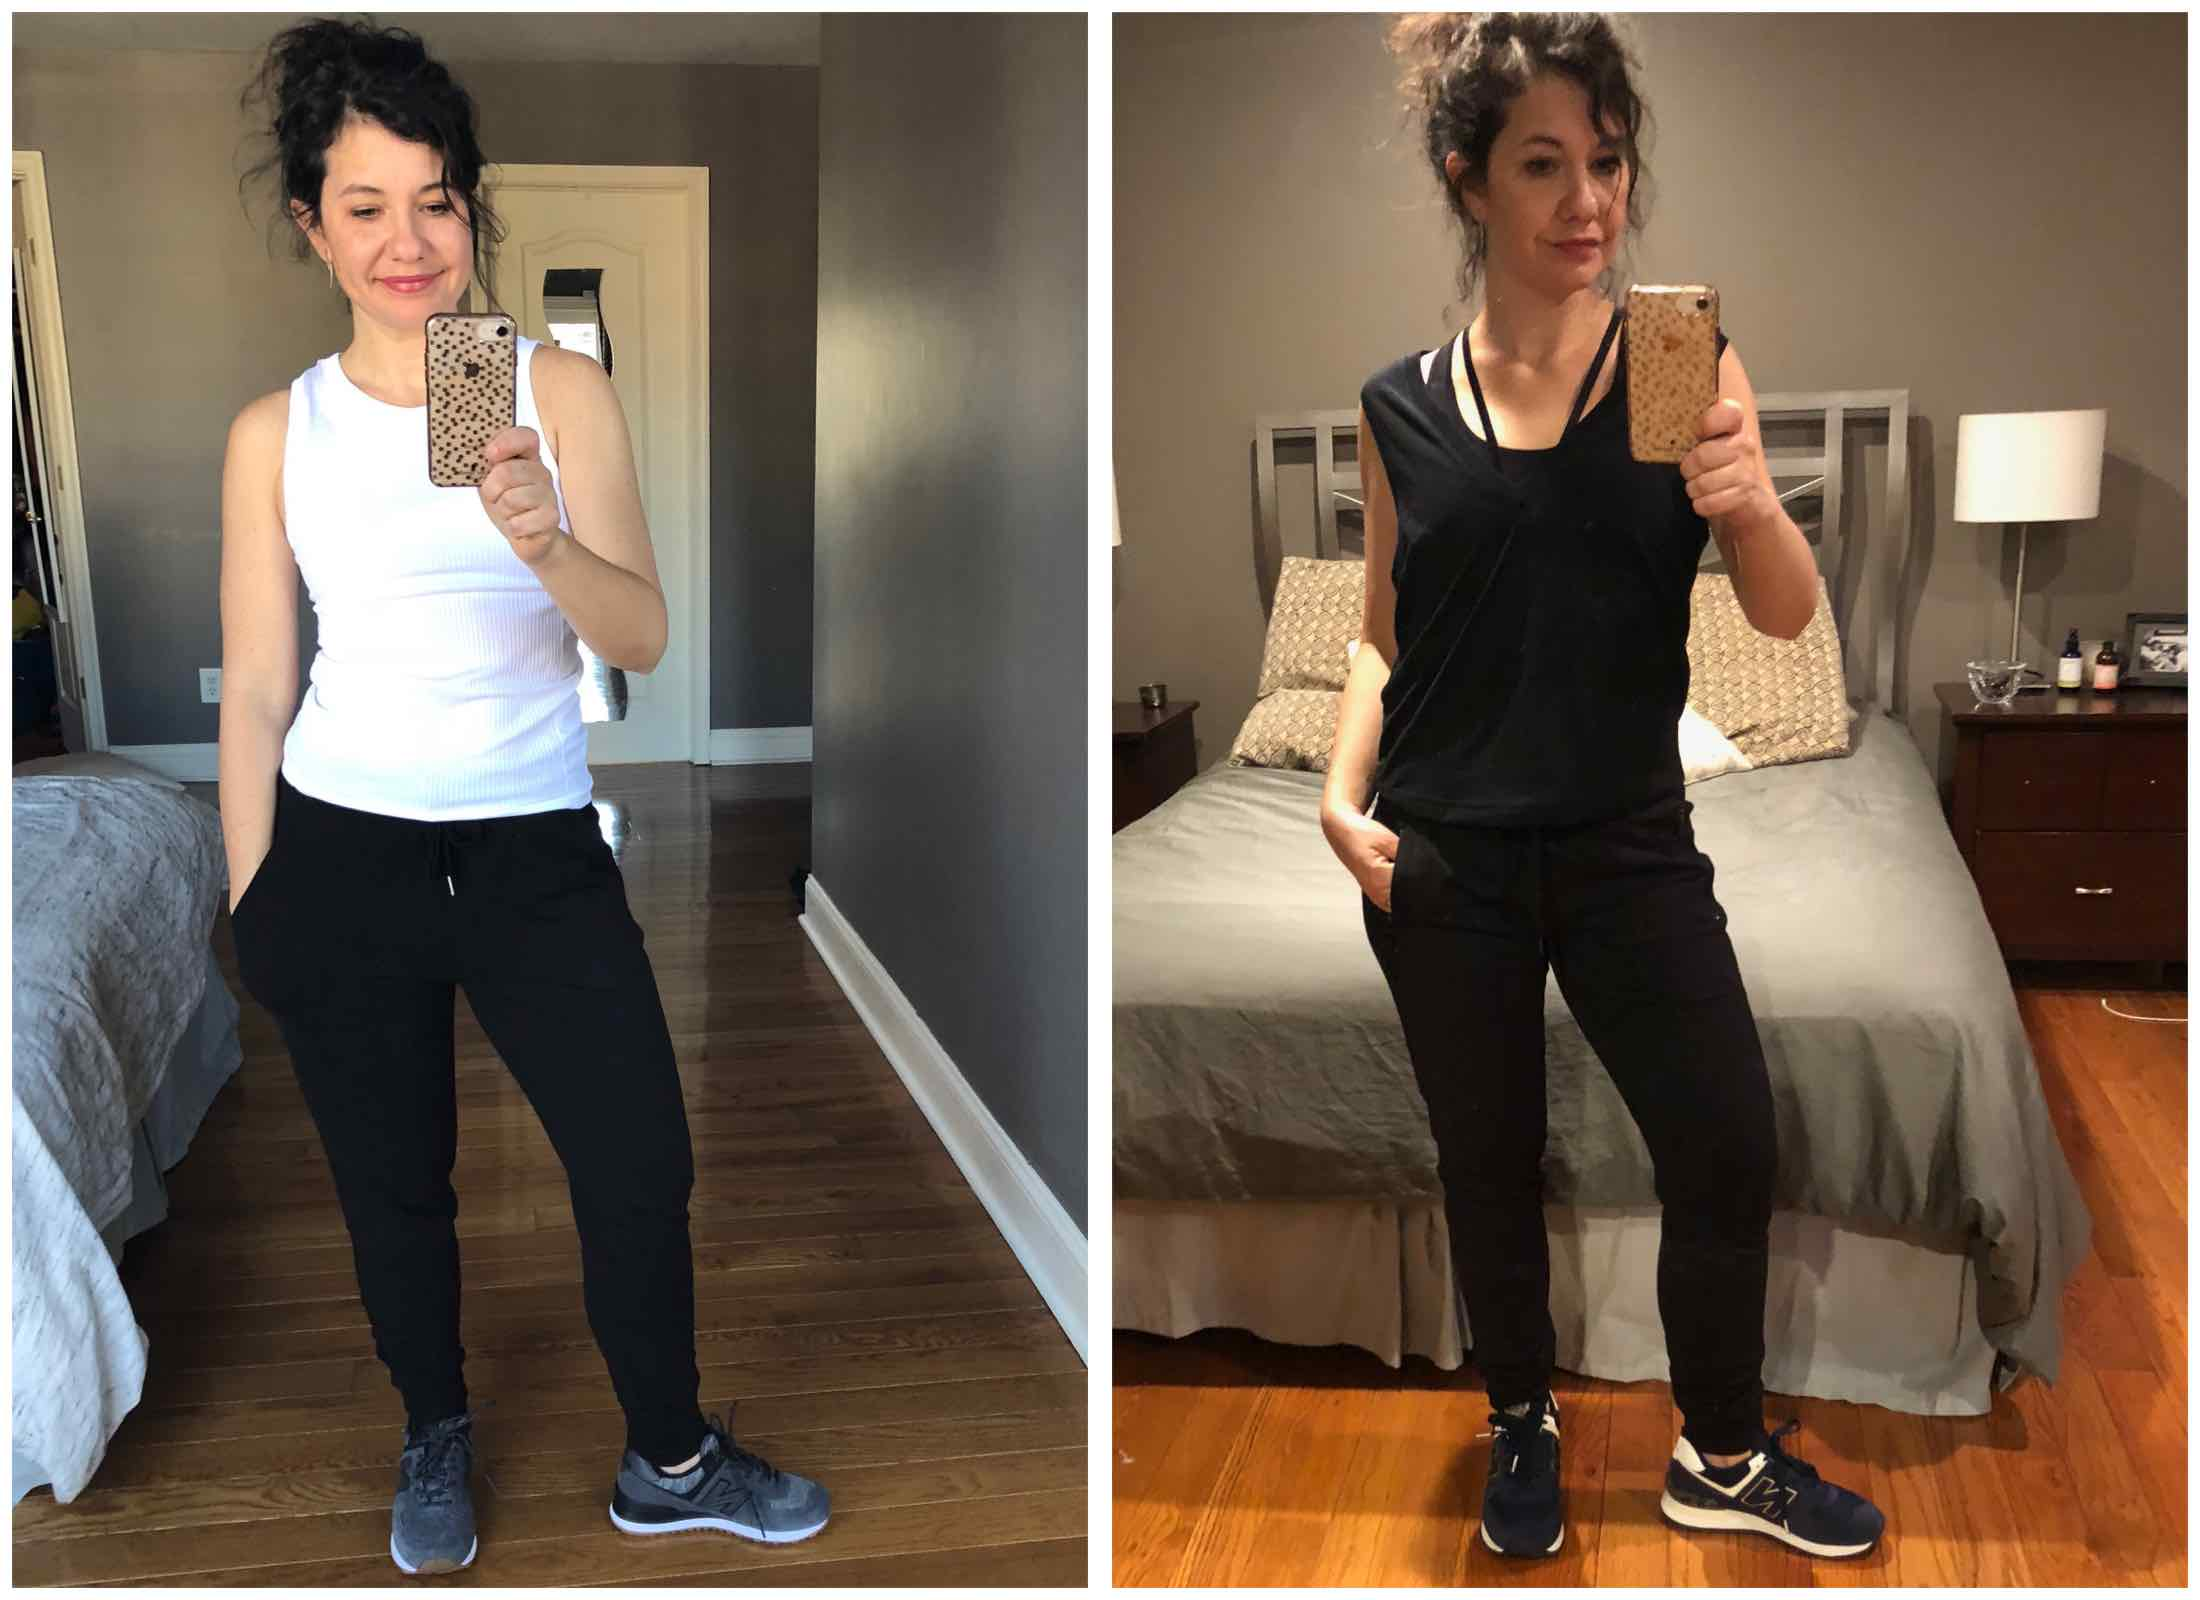 Cute workout clothes don't have to be skin-tight to perform. We try ALL the loose-fitting athletic pants — from sweatpants to flares. #dressingroomselfies